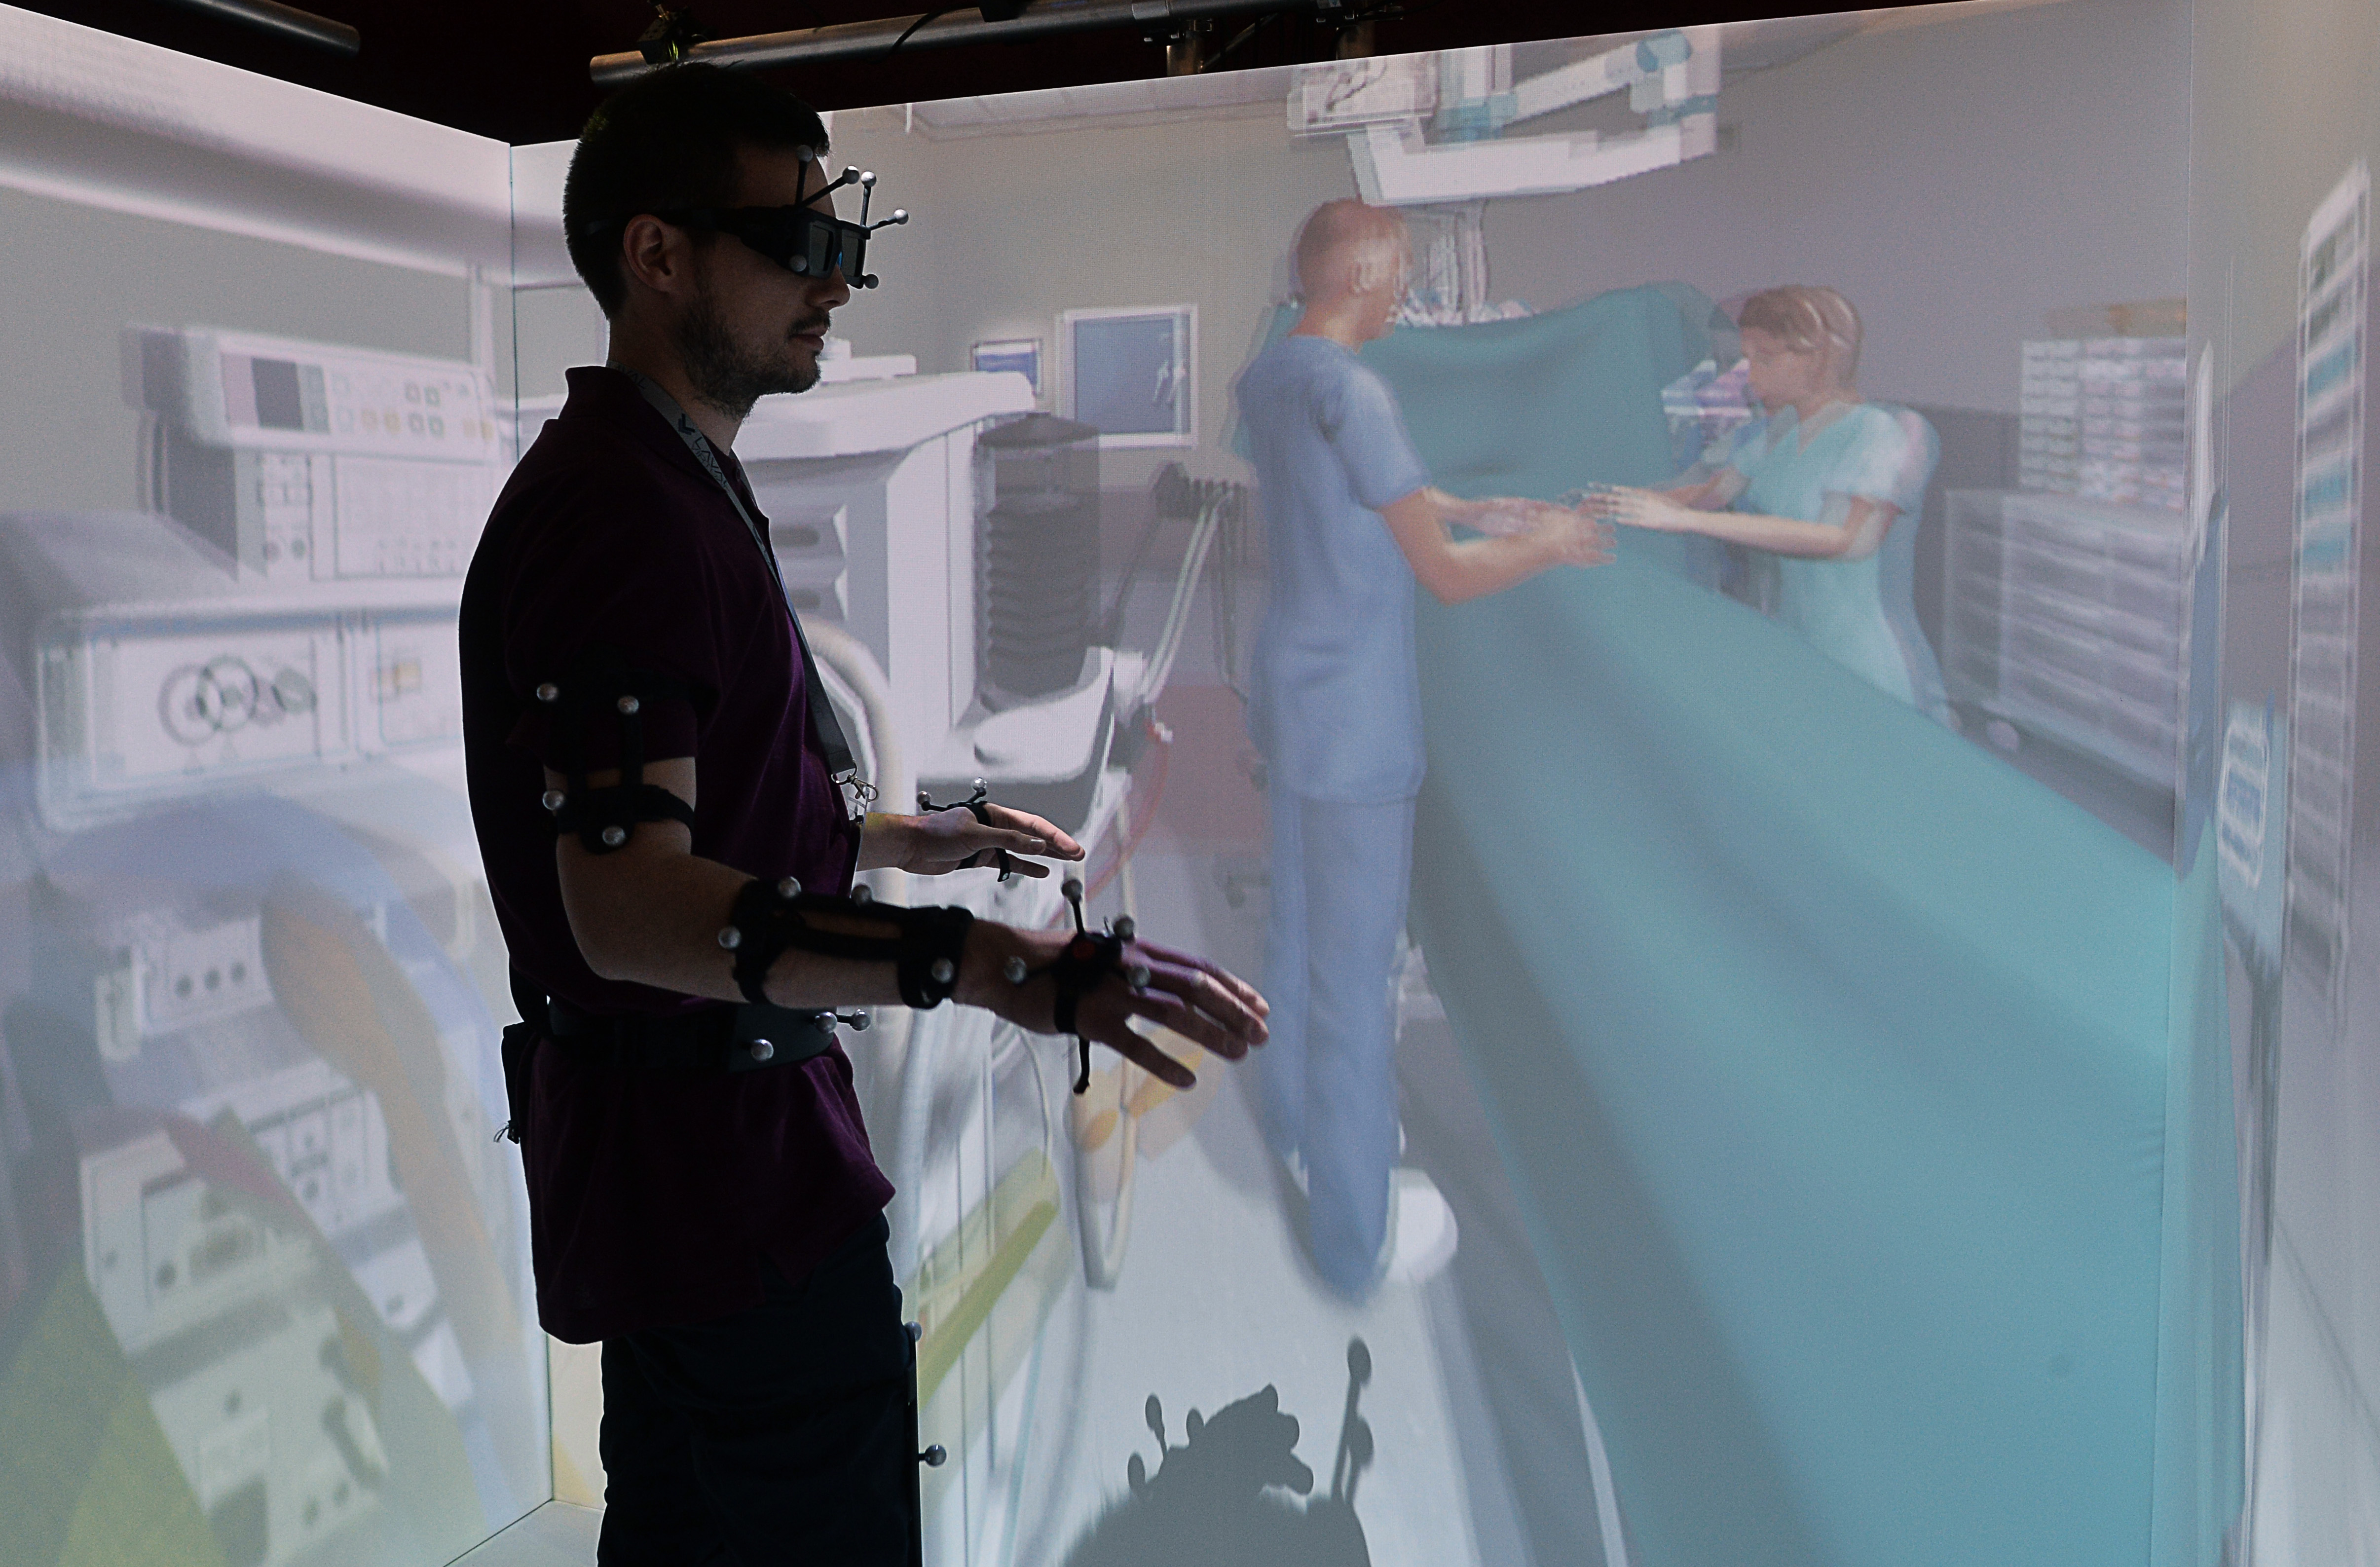 Virtual and augmented reality can save lives by improving surgeons' training